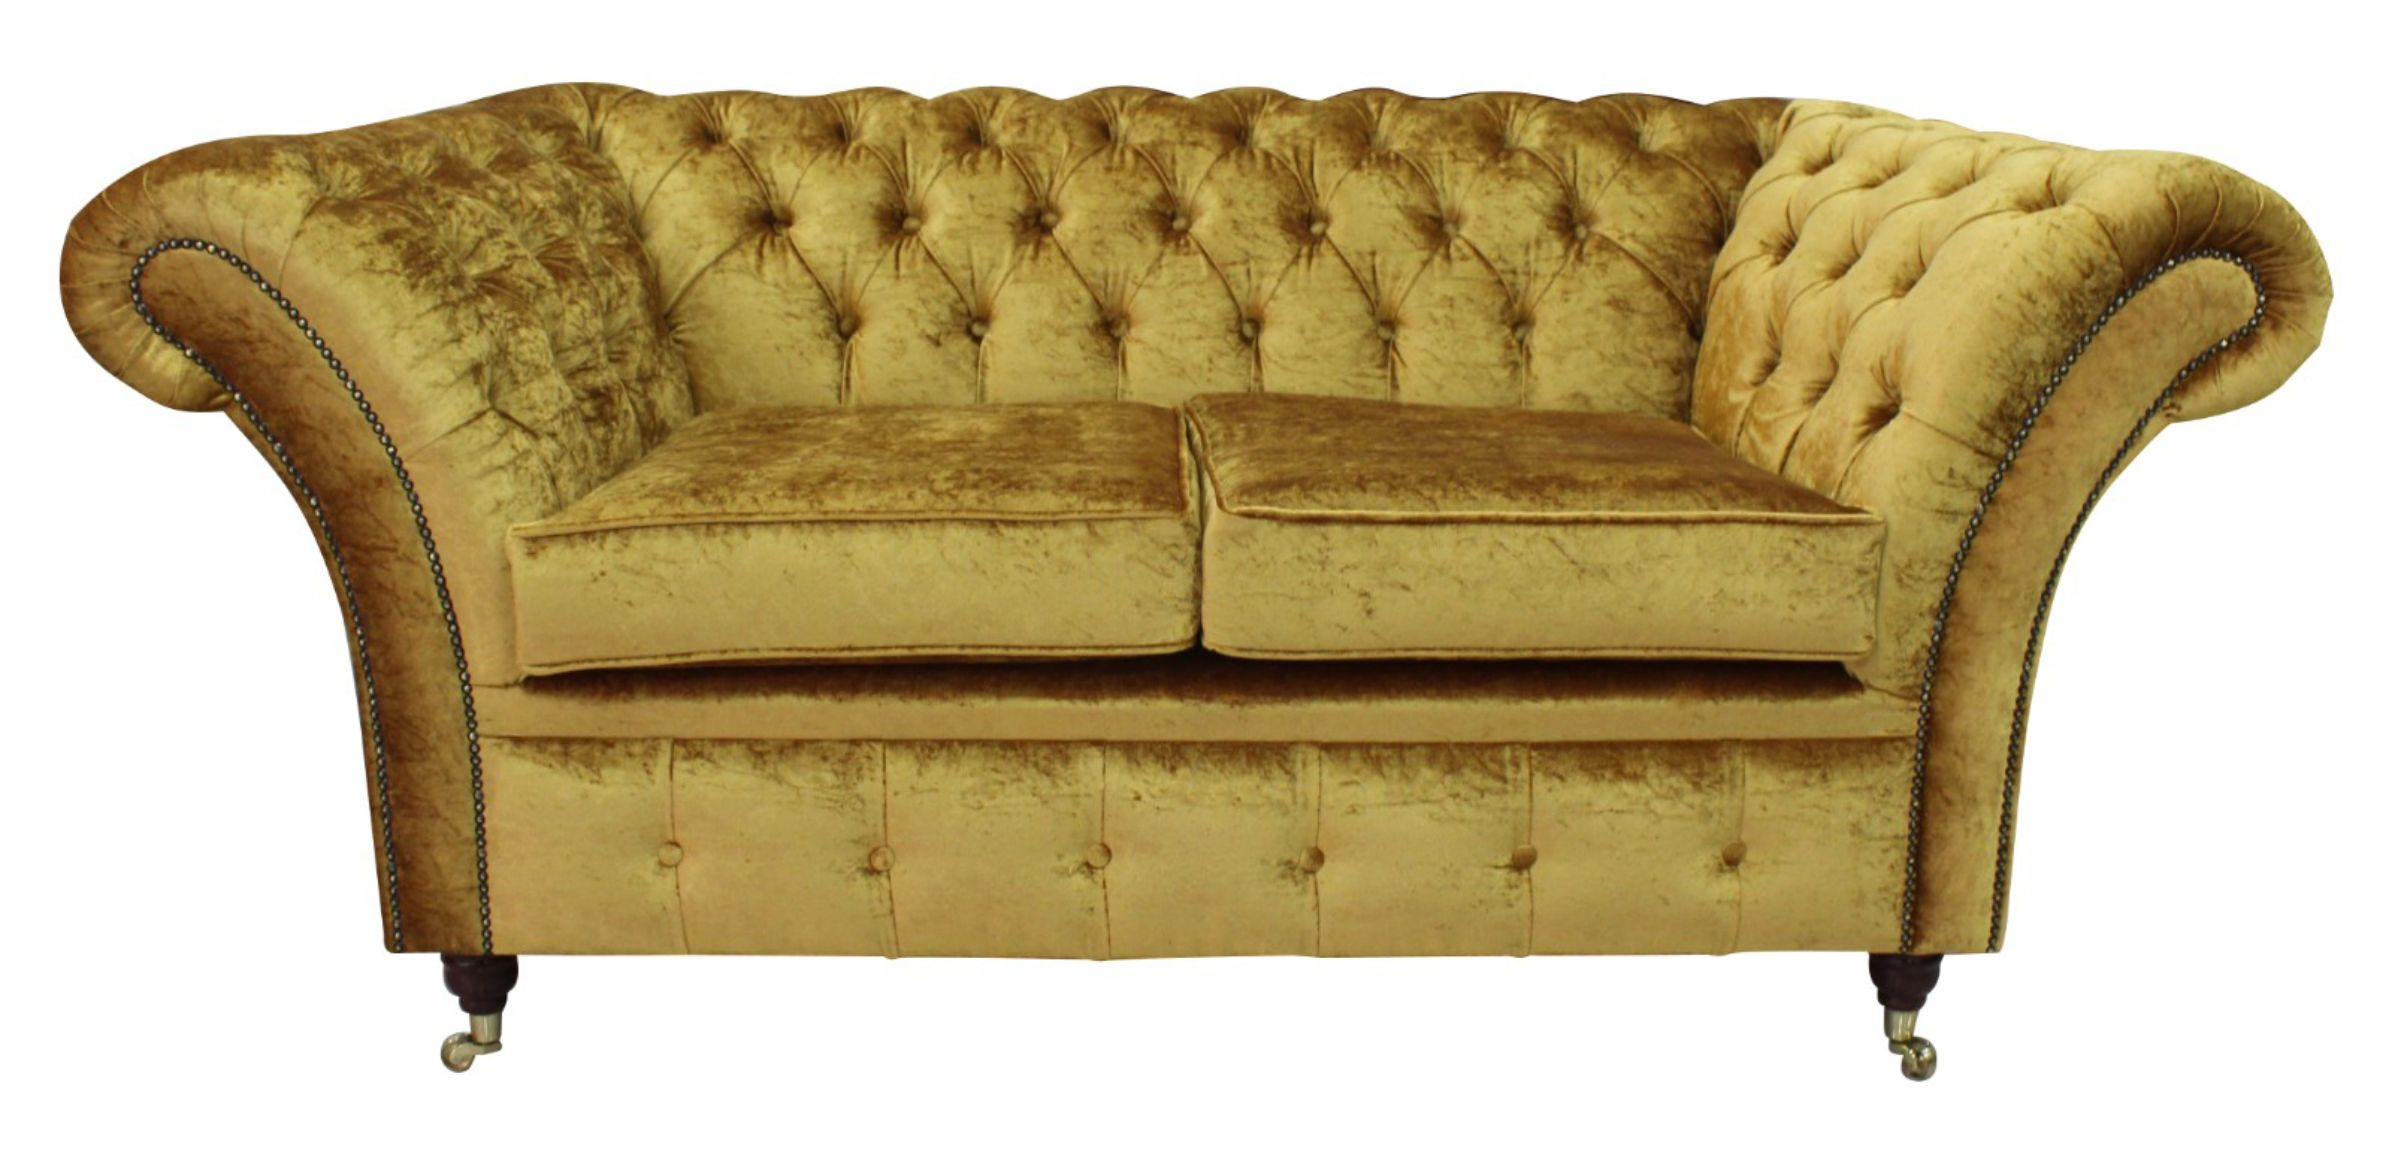 Chesterfield Sofas Quick Delivery Gold Fabric 12 Month